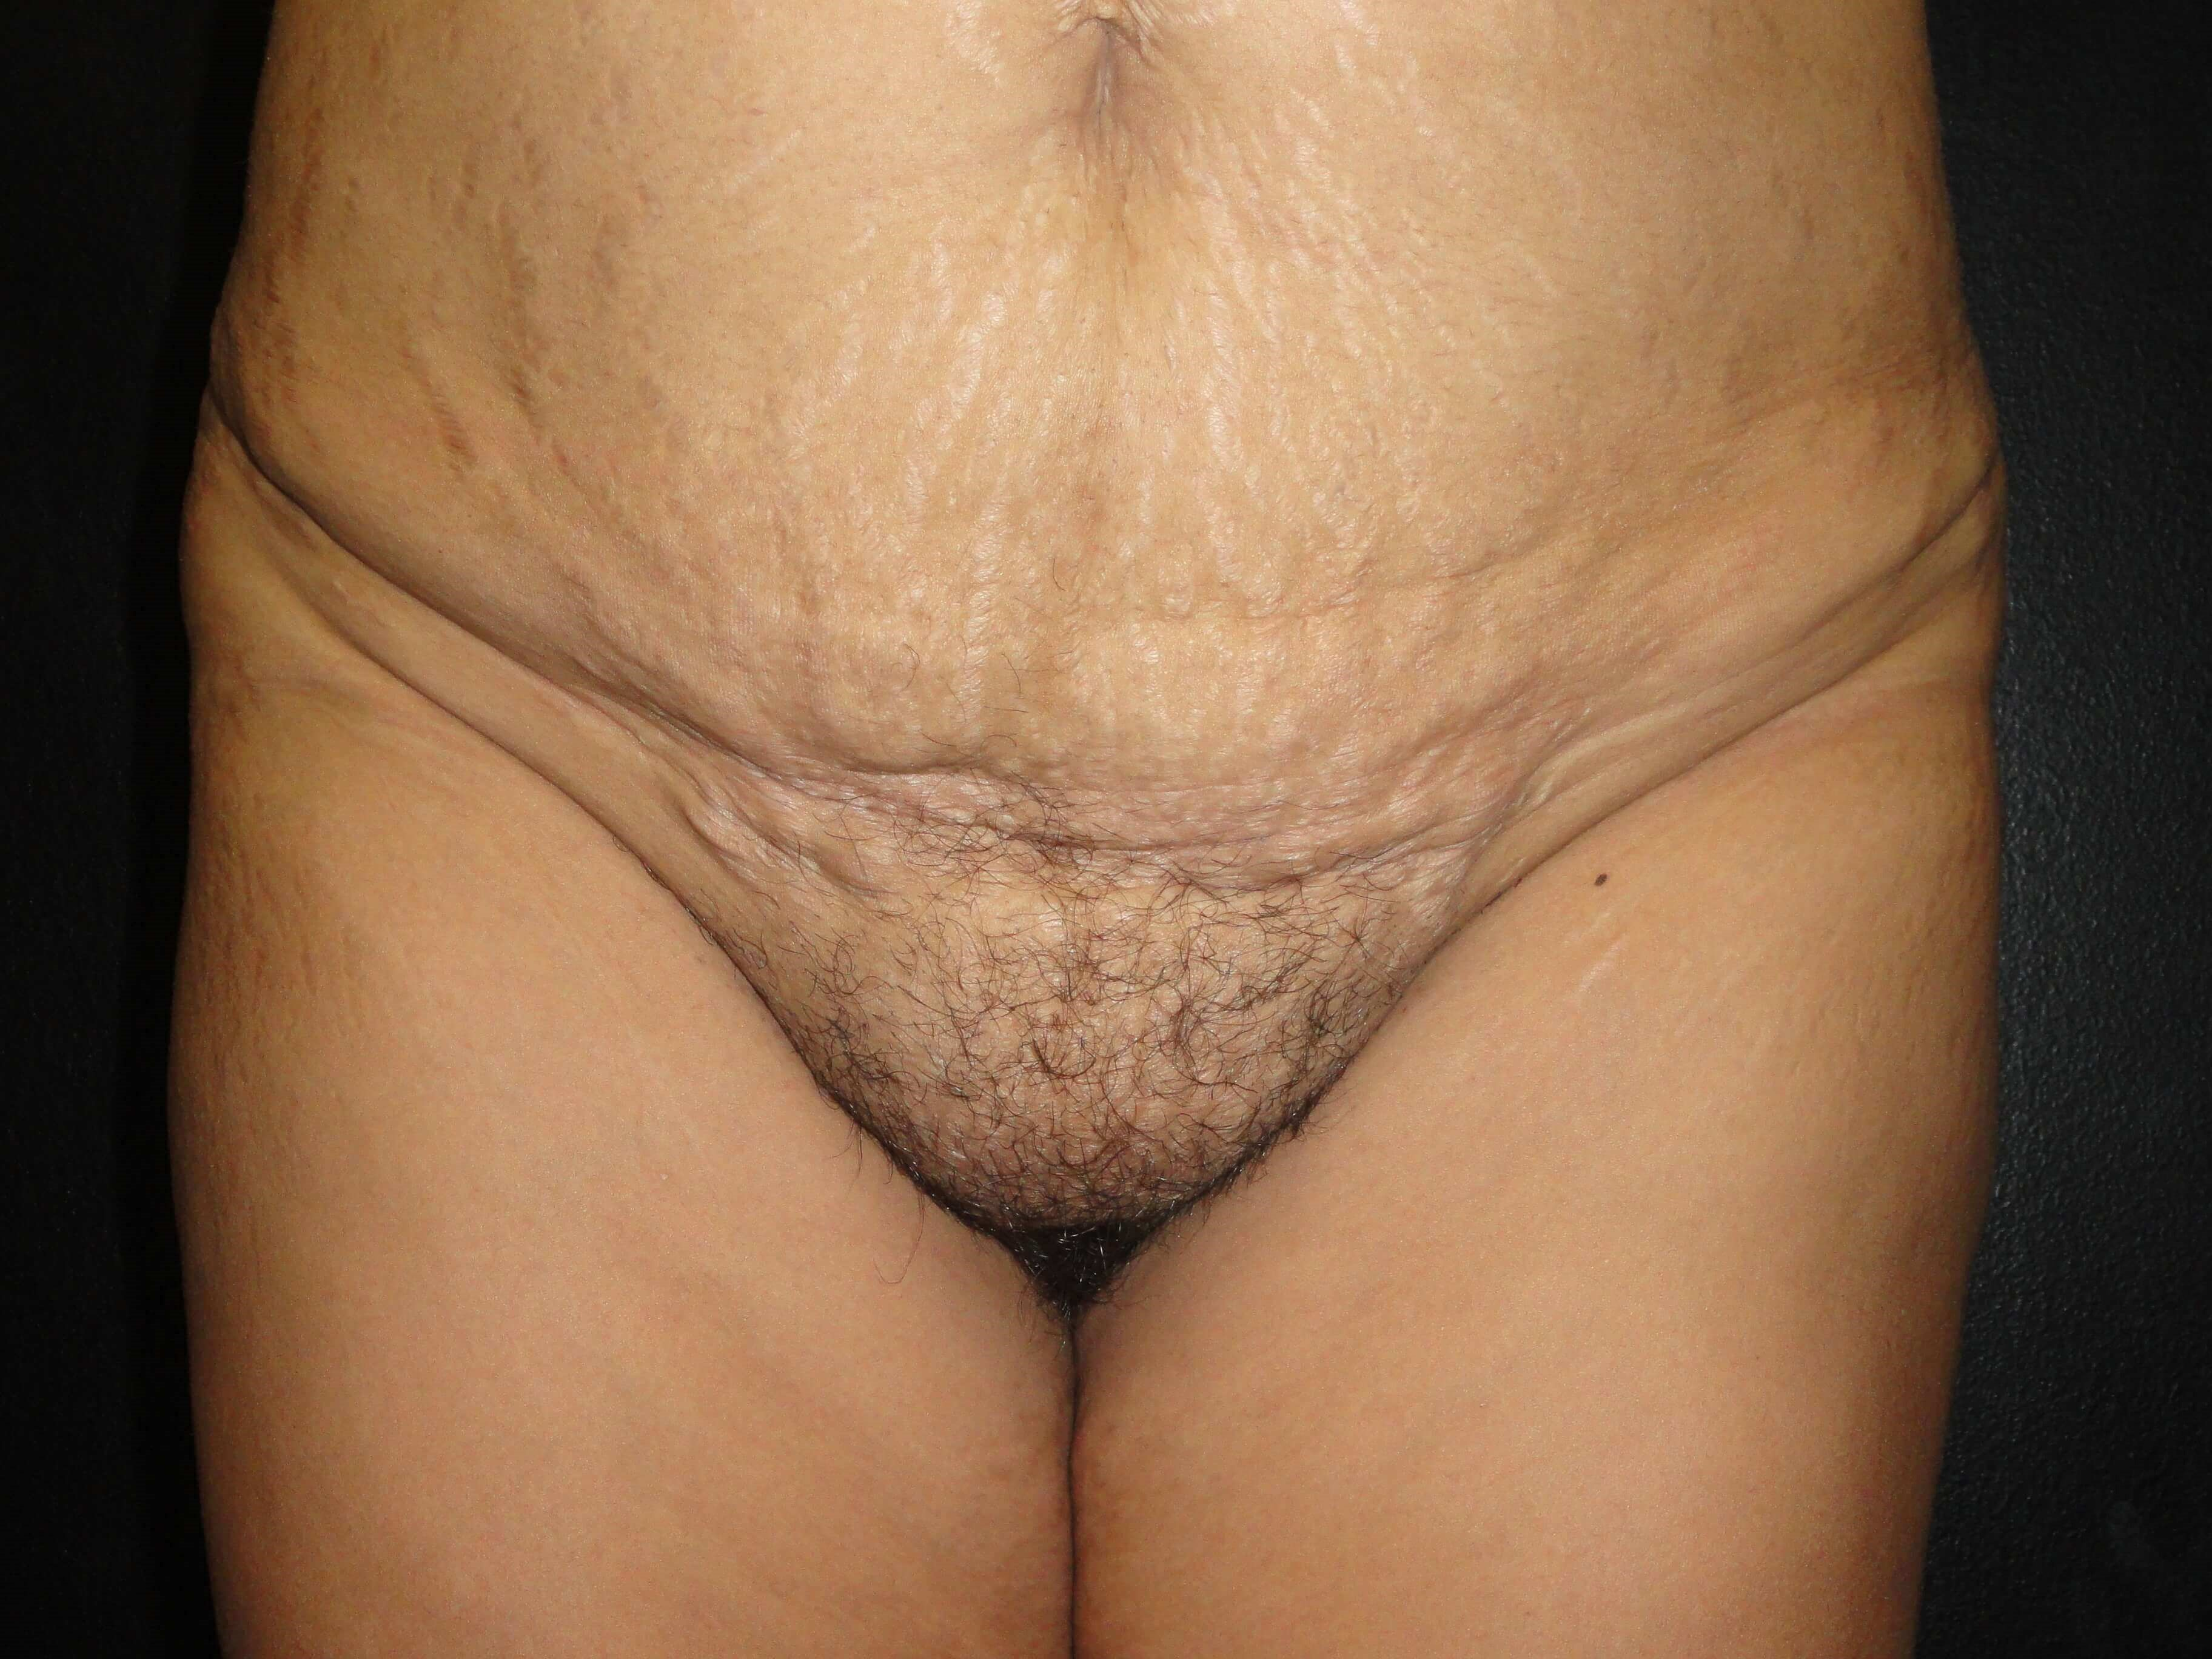 Front View - Pubic Region Before